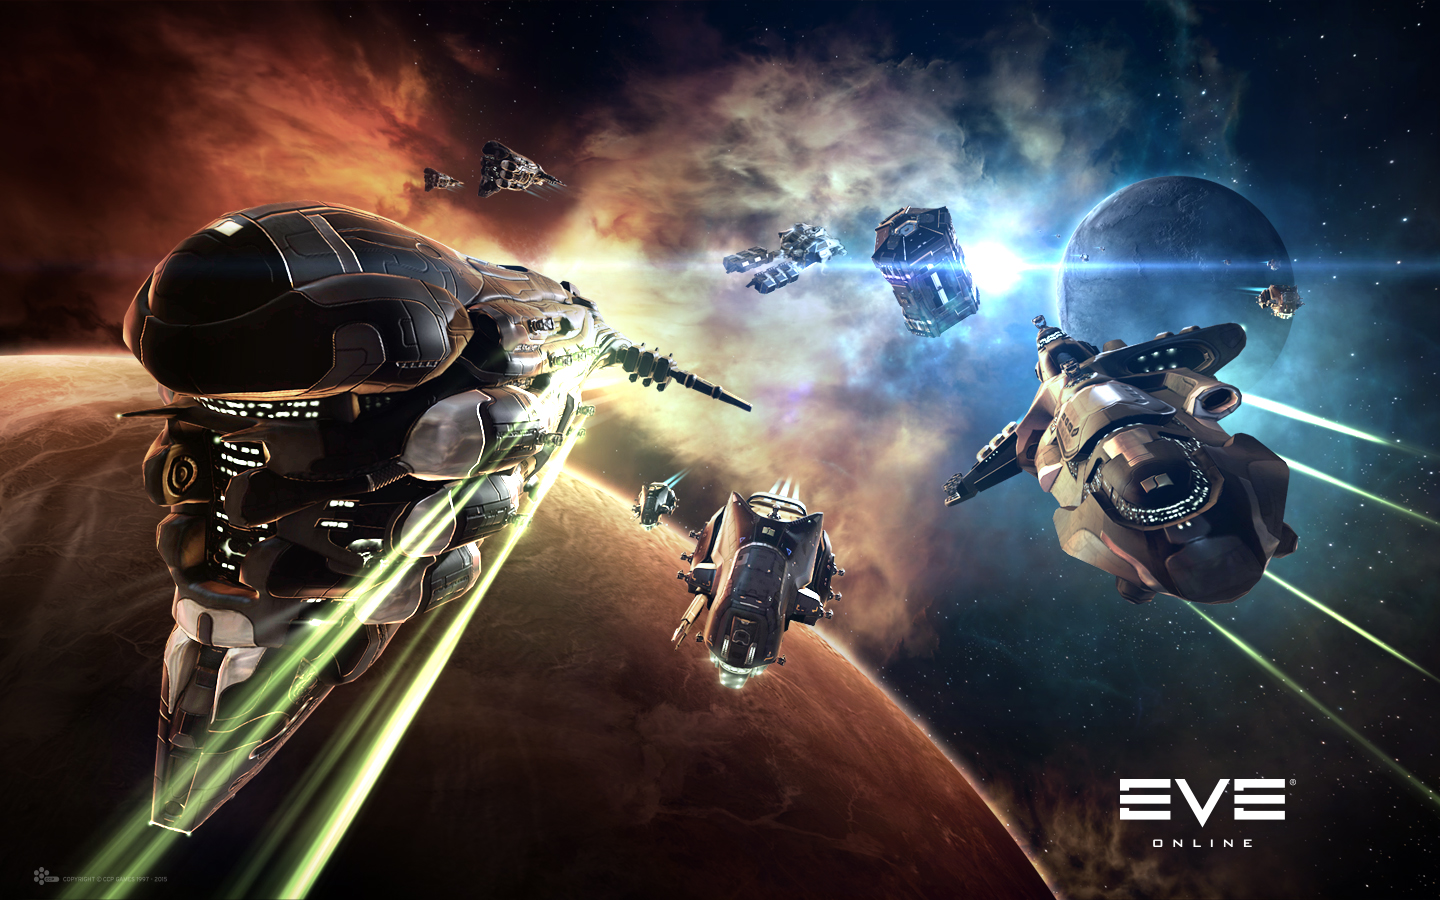 Eve online free date